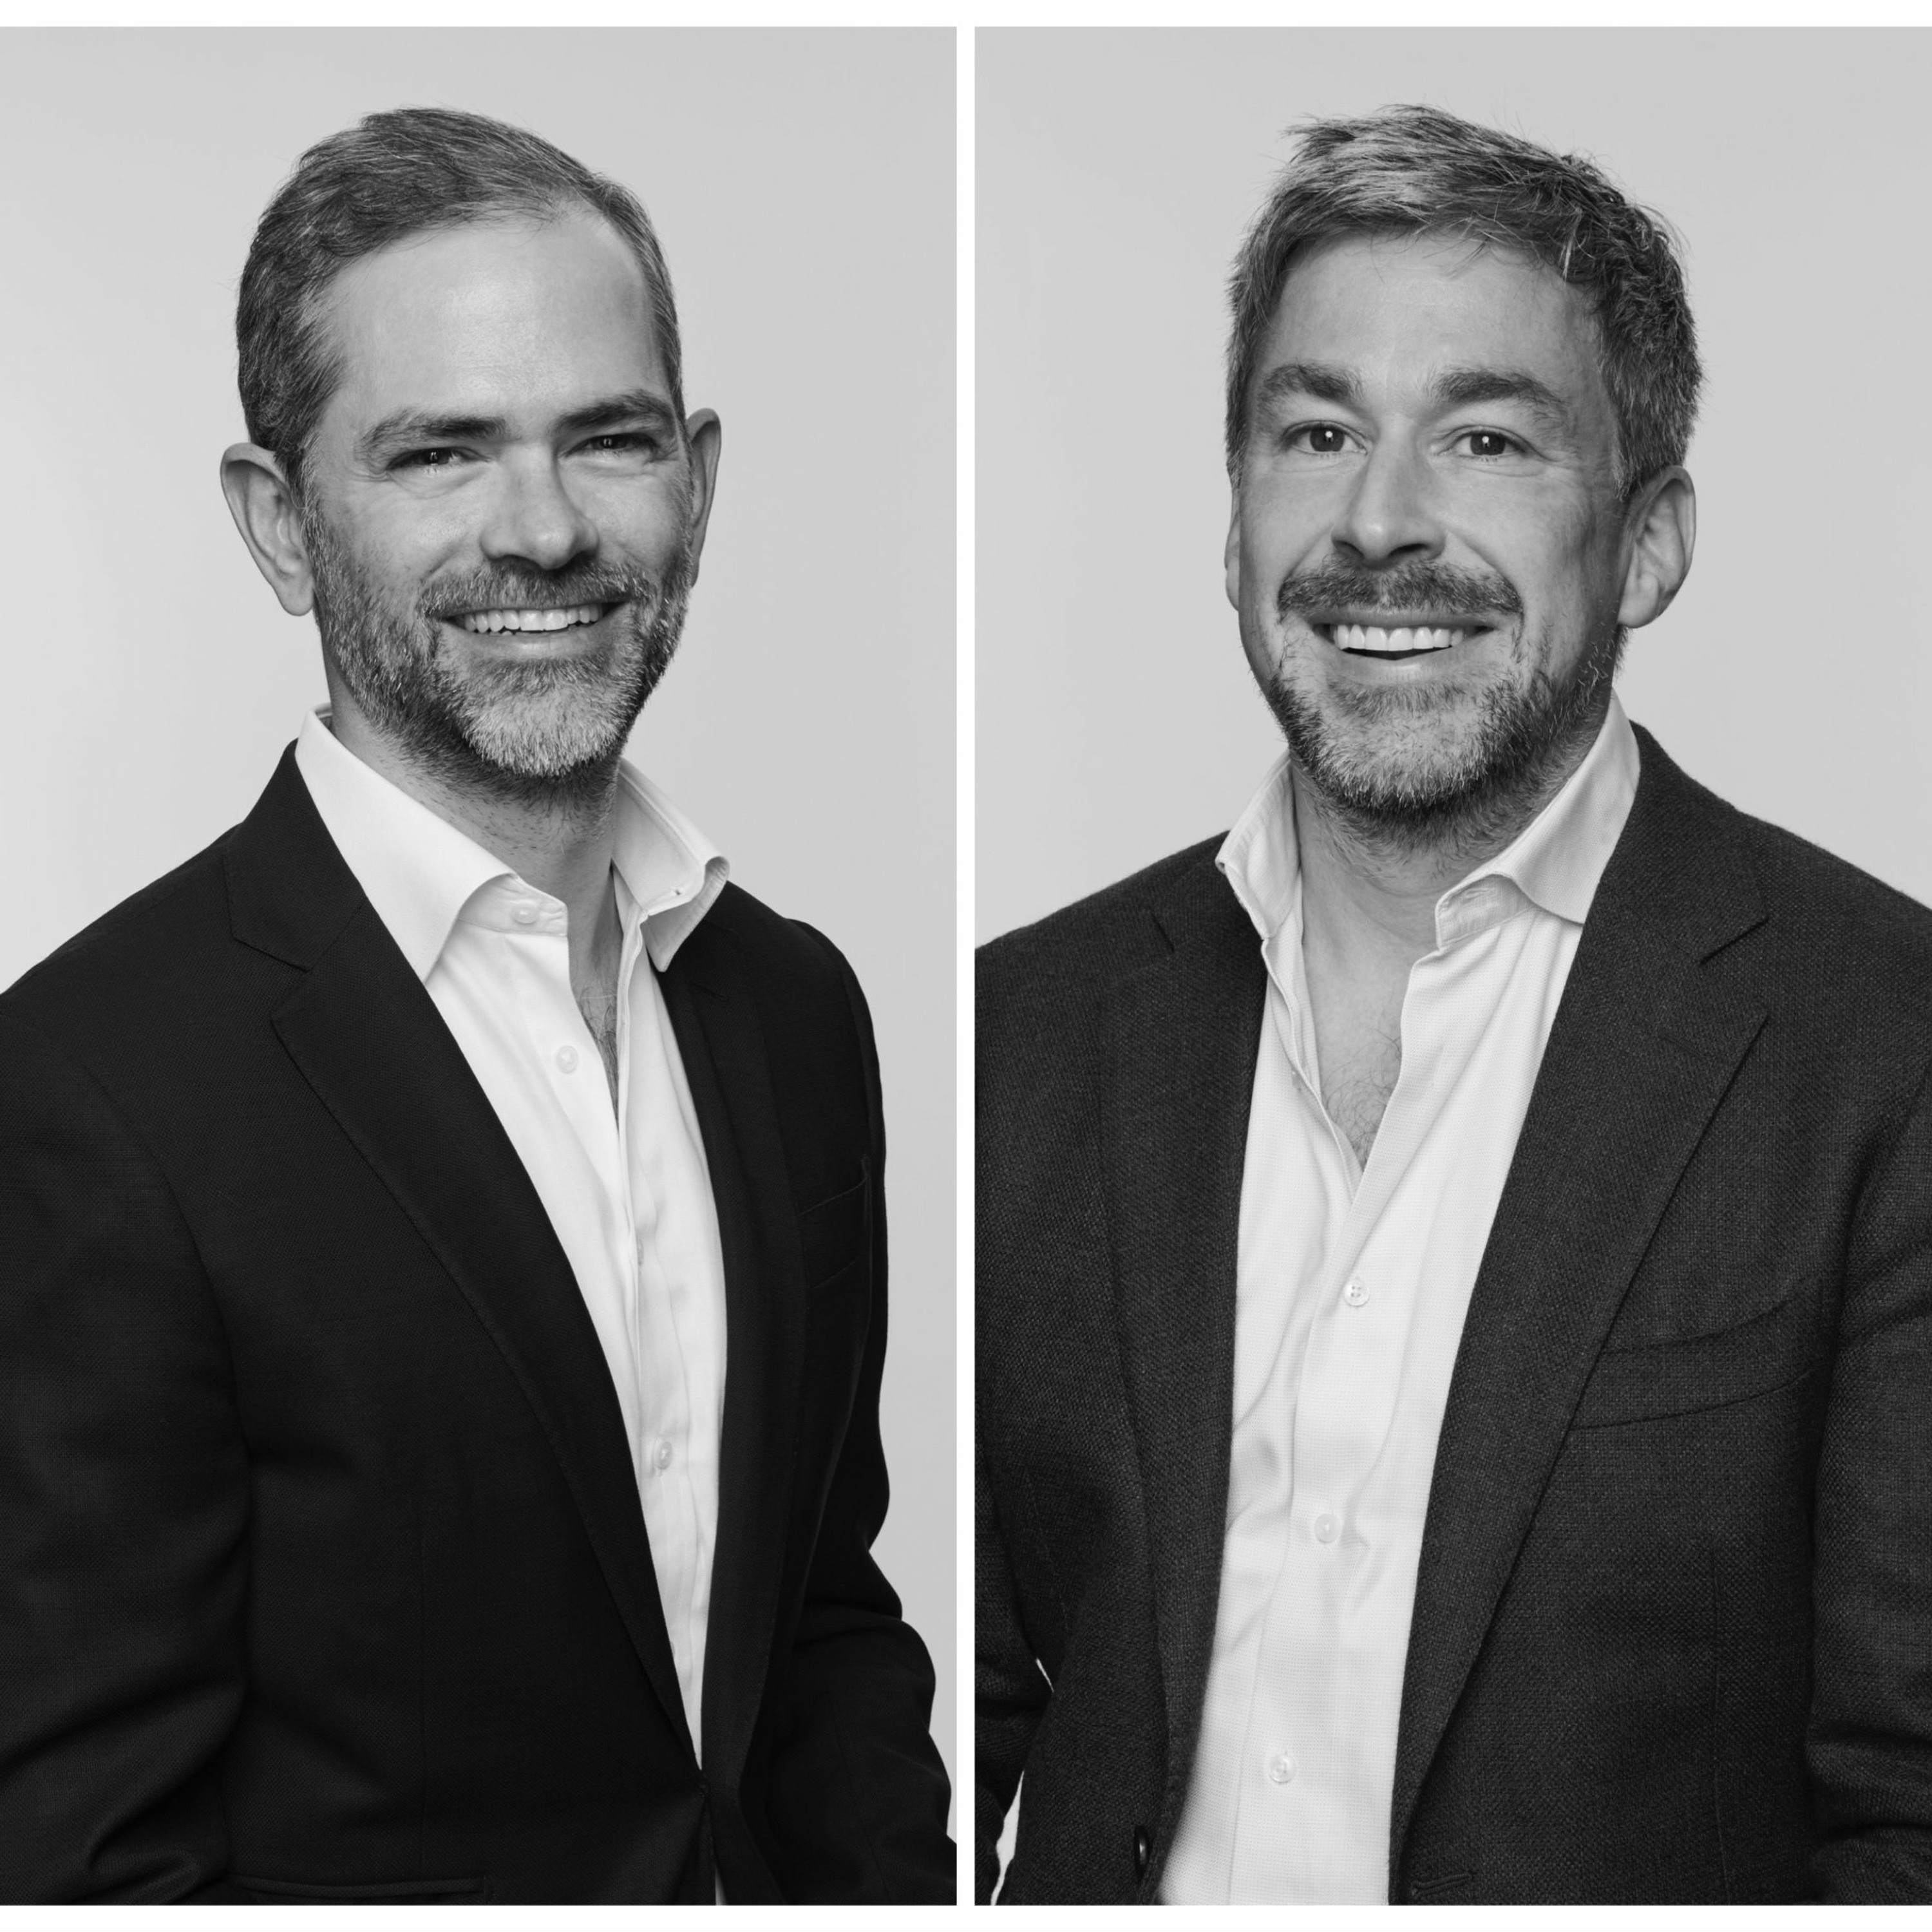 Fintech Collective's Brooks Gibbins & Gareth Jones - Partnering with Persistent Visionaries